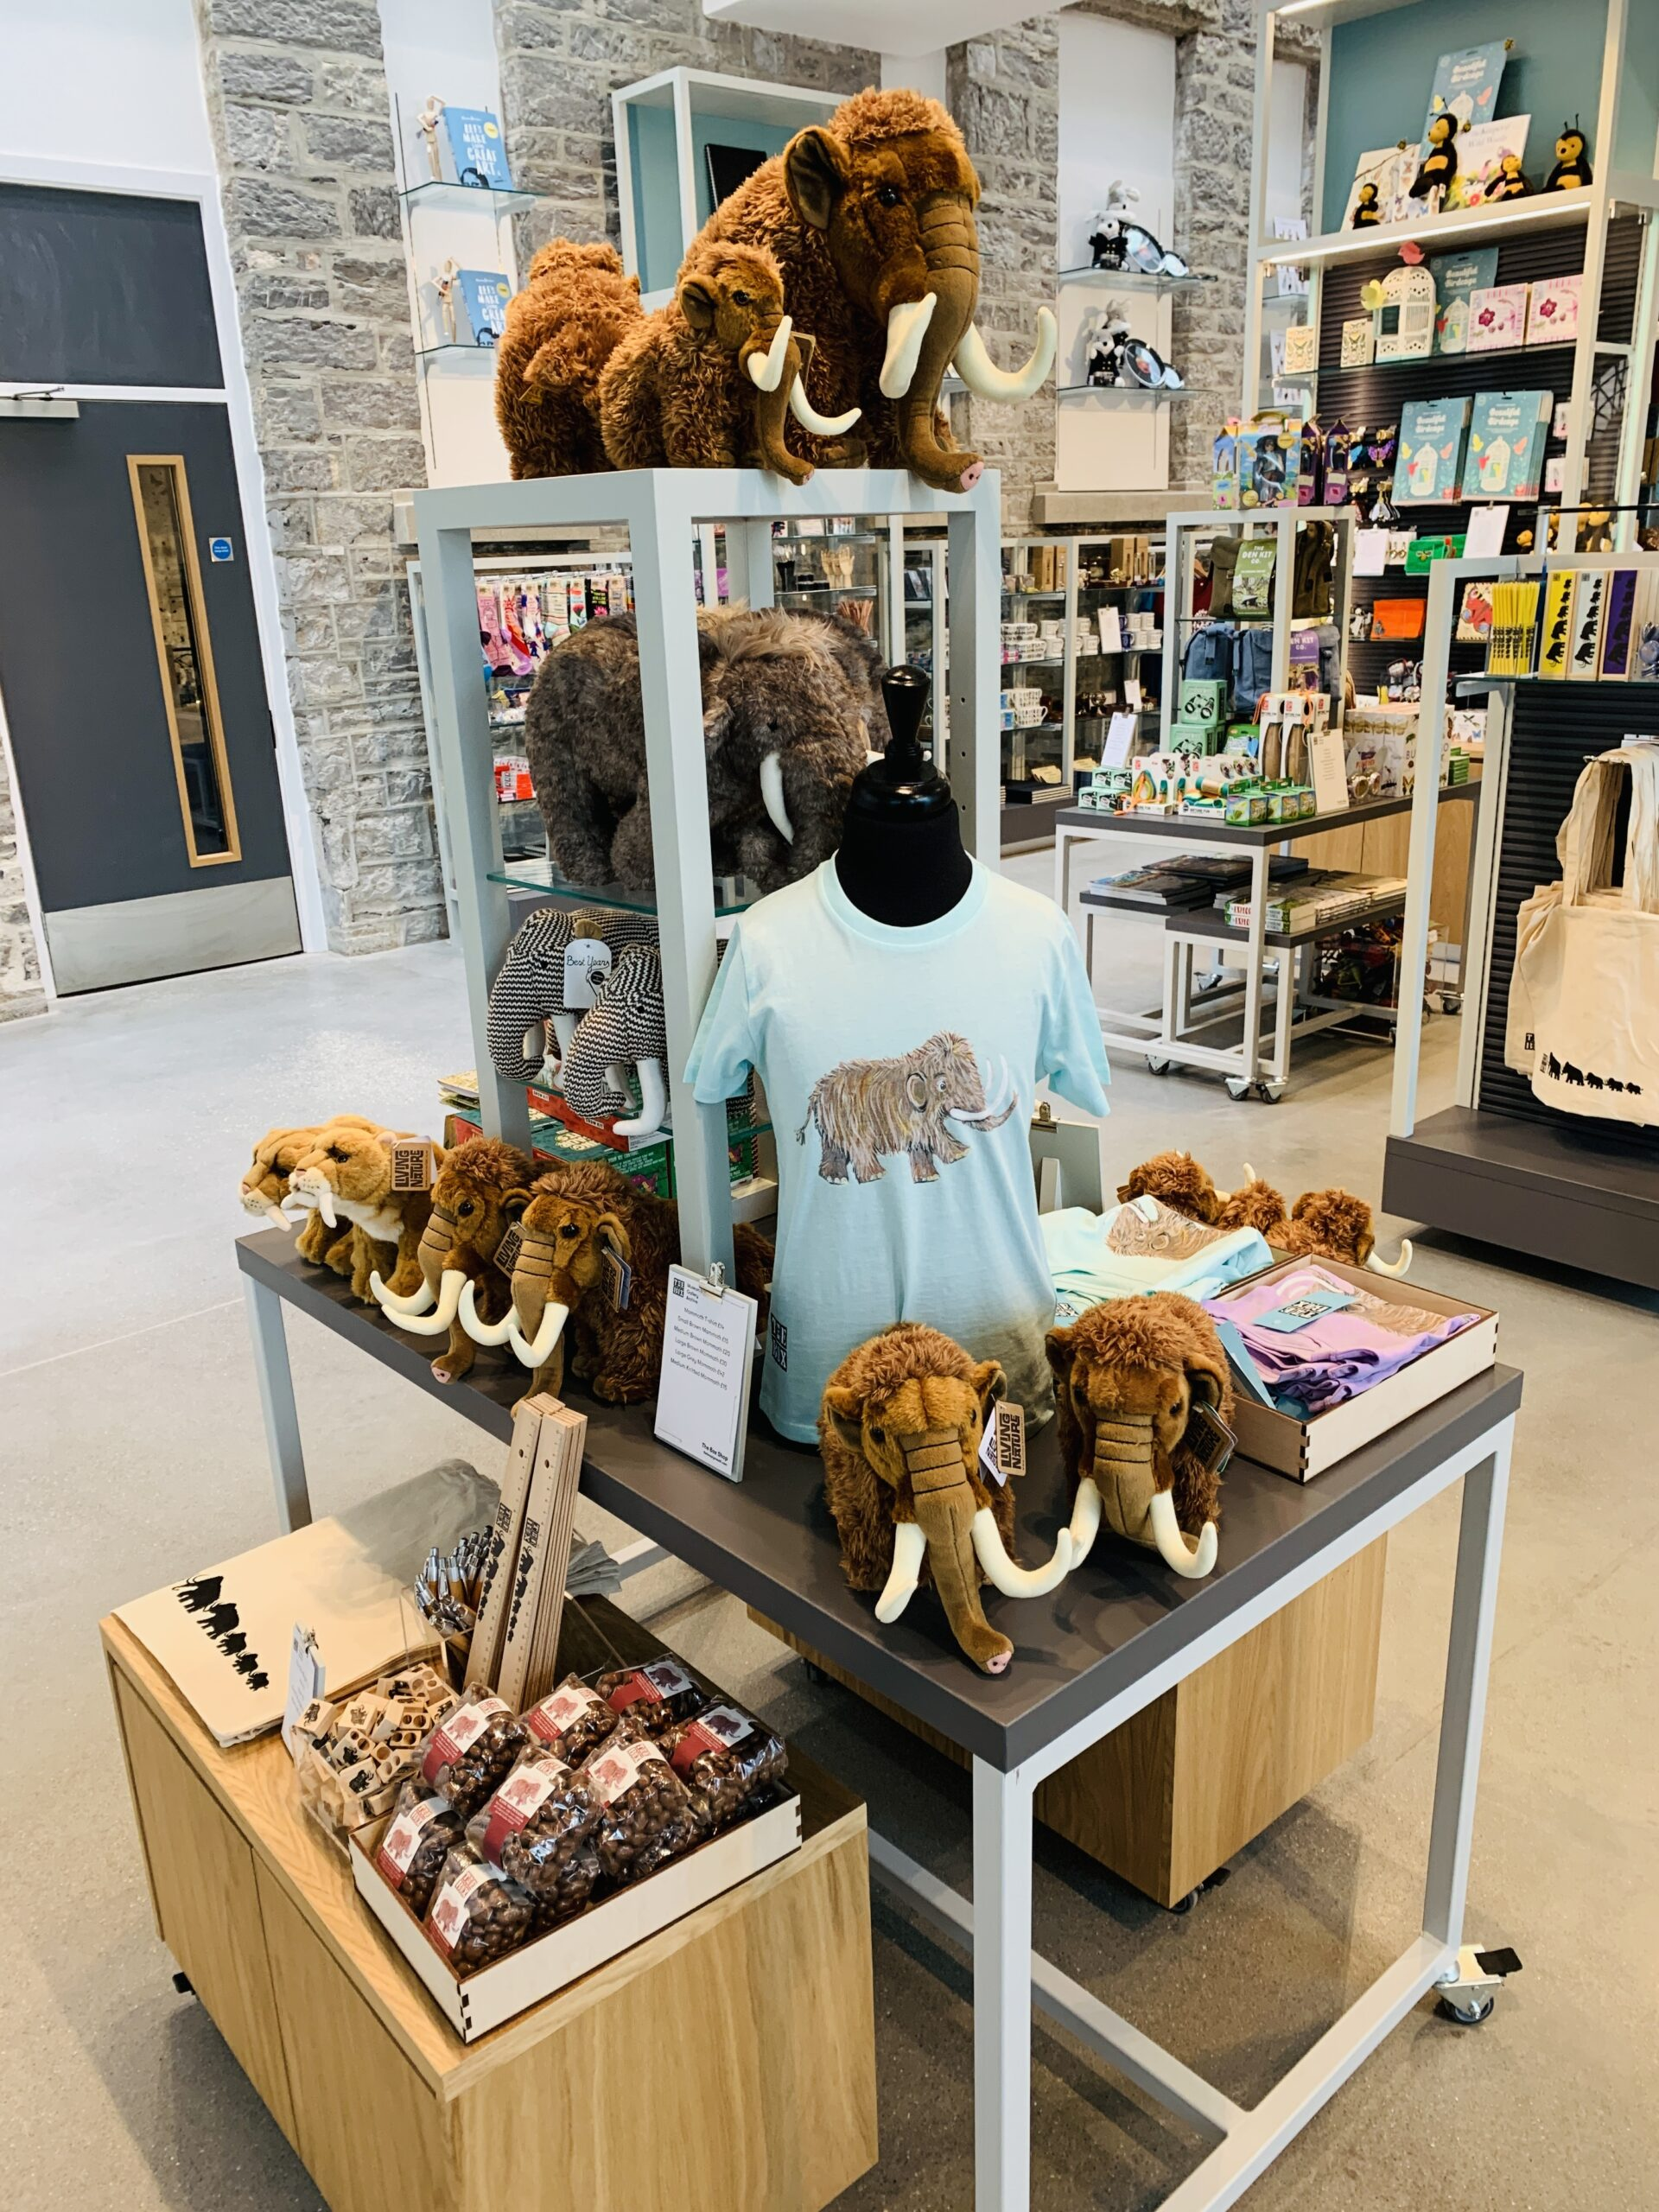 Woolly mammoth toys and clothing on sale in the gift shop at The Box museum in Plymouth